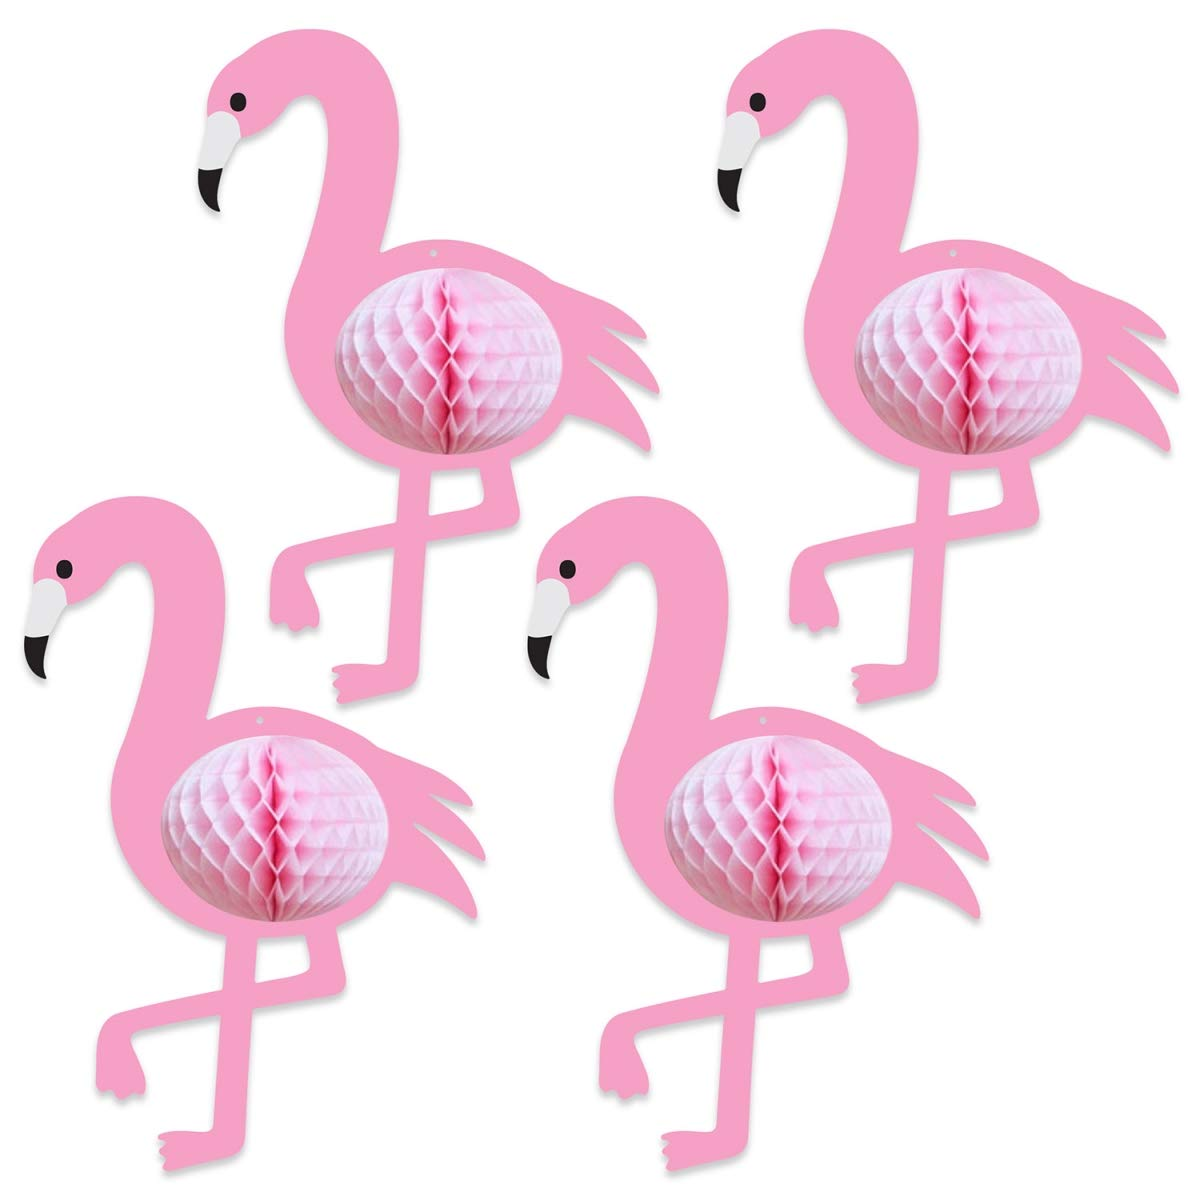 Beistle 53568 10 x 7 in. Tissue Flamingos - Pack of 12 by Beistle (Image #1)